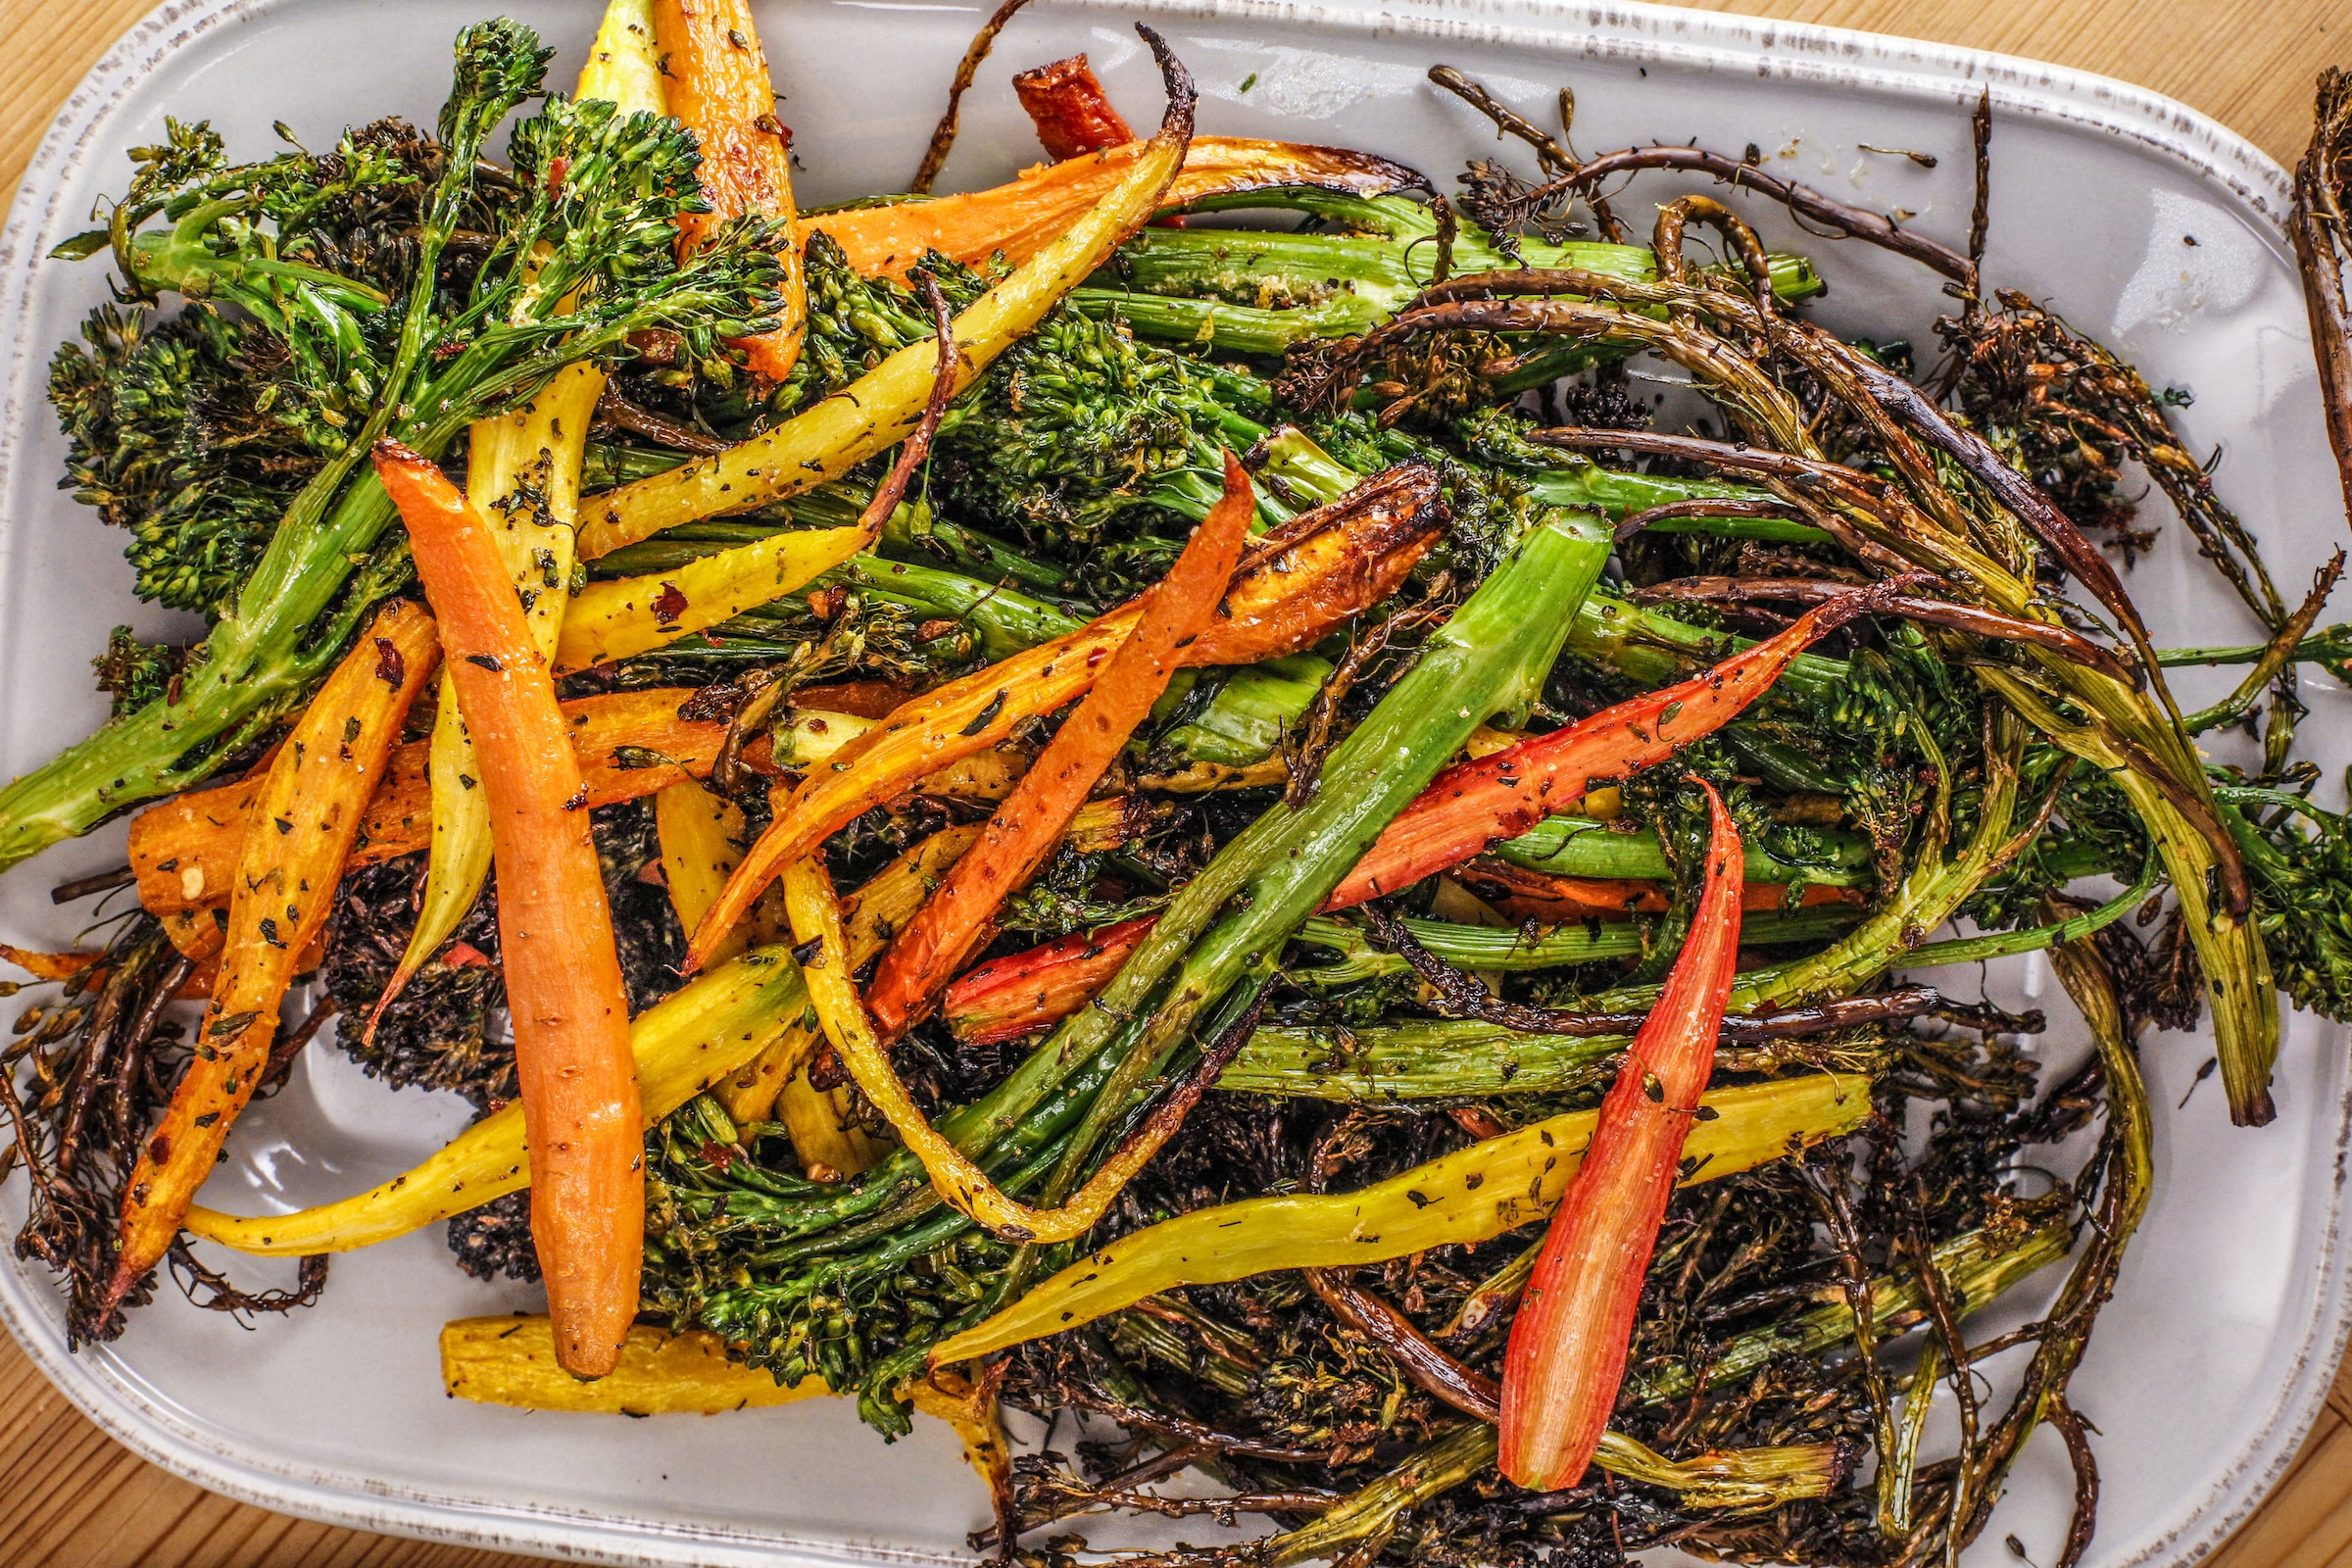 Rachael's Roasted Broccolini and Baby Carrots